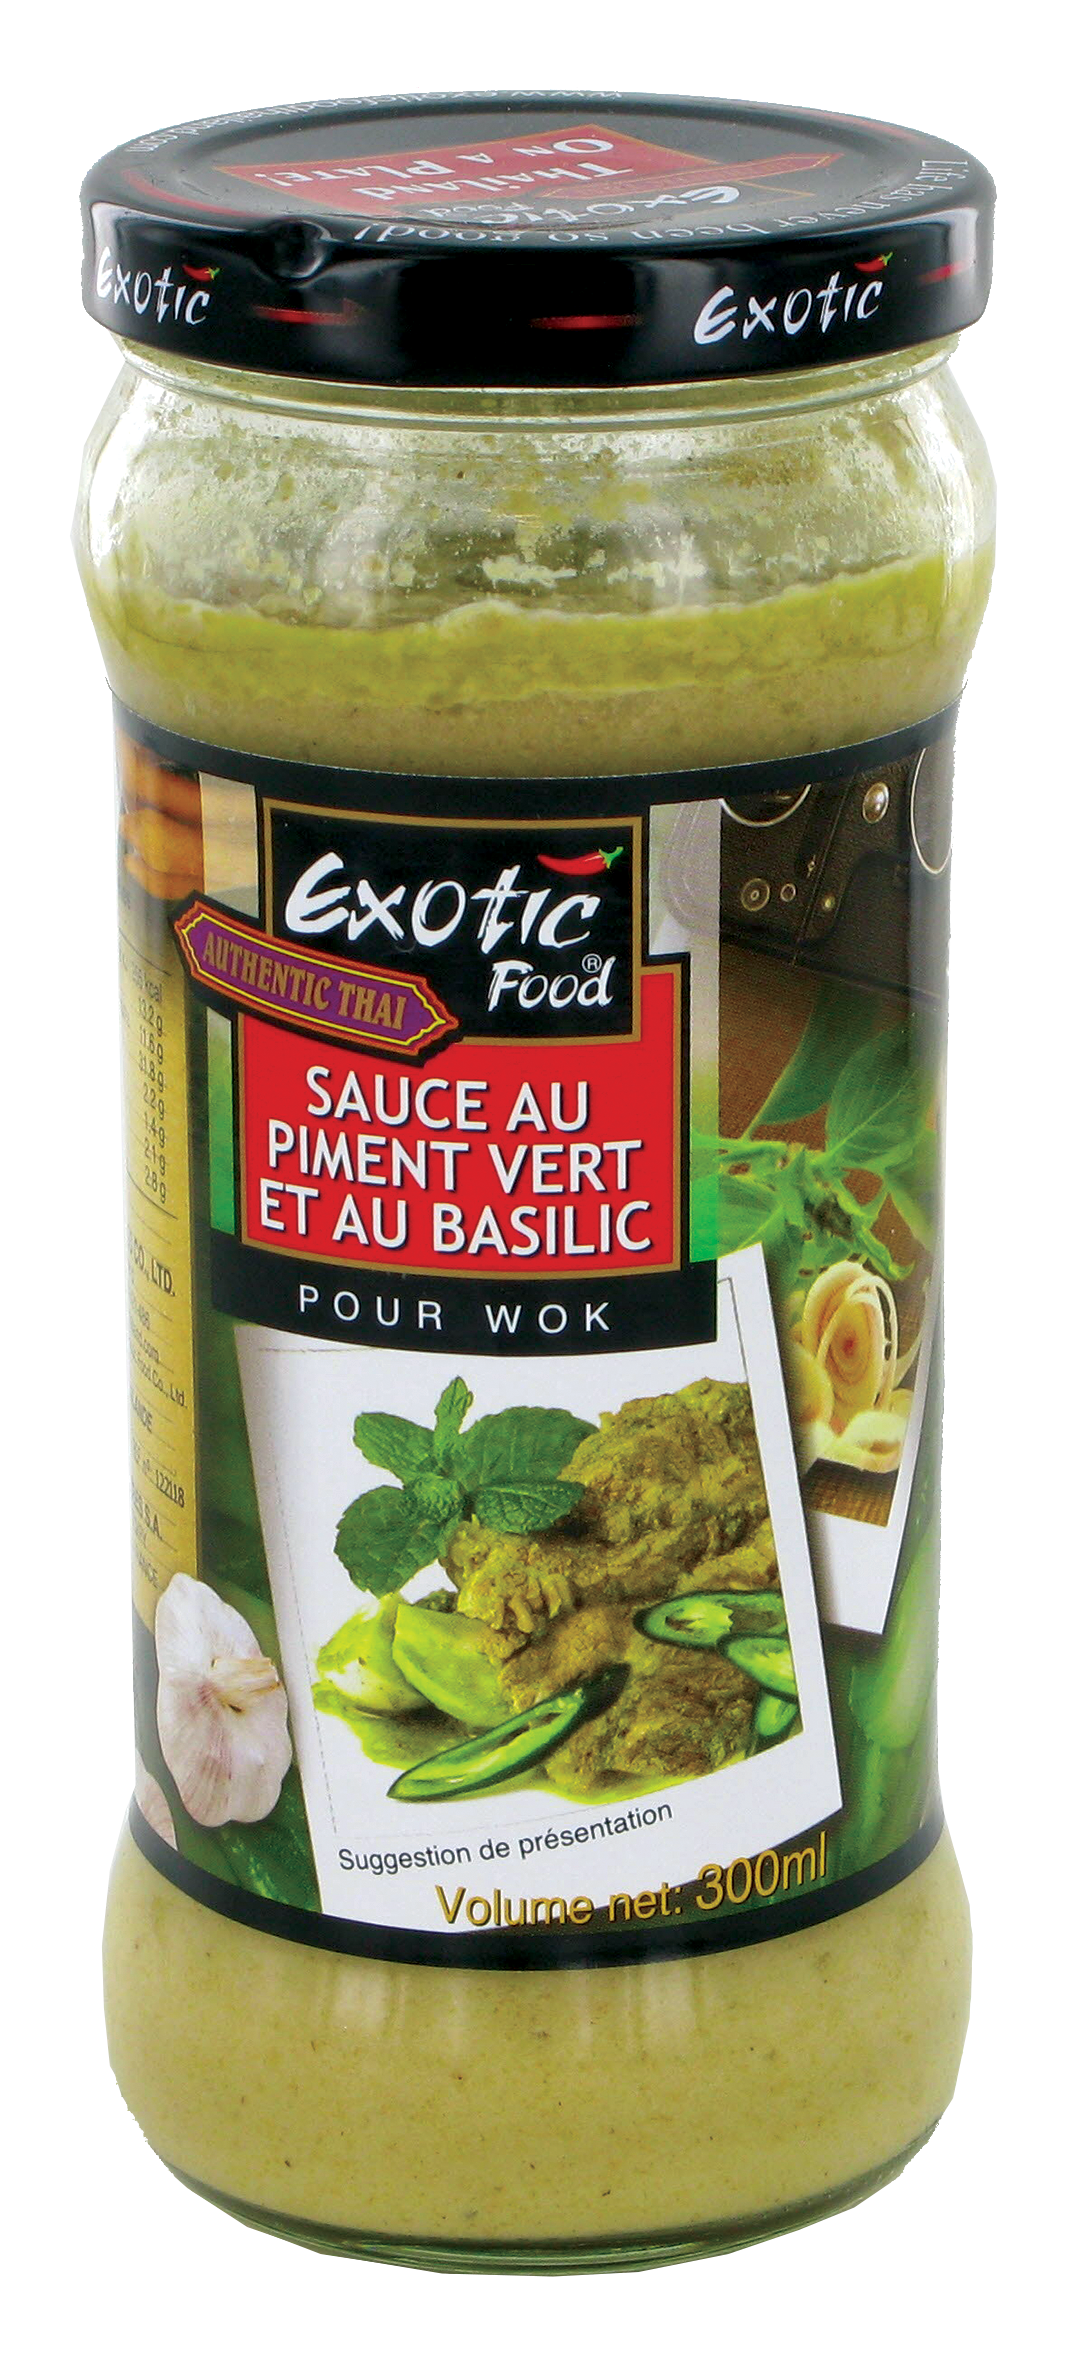 Sauce au piment vert et au basilic, Exotic food (300 ml)